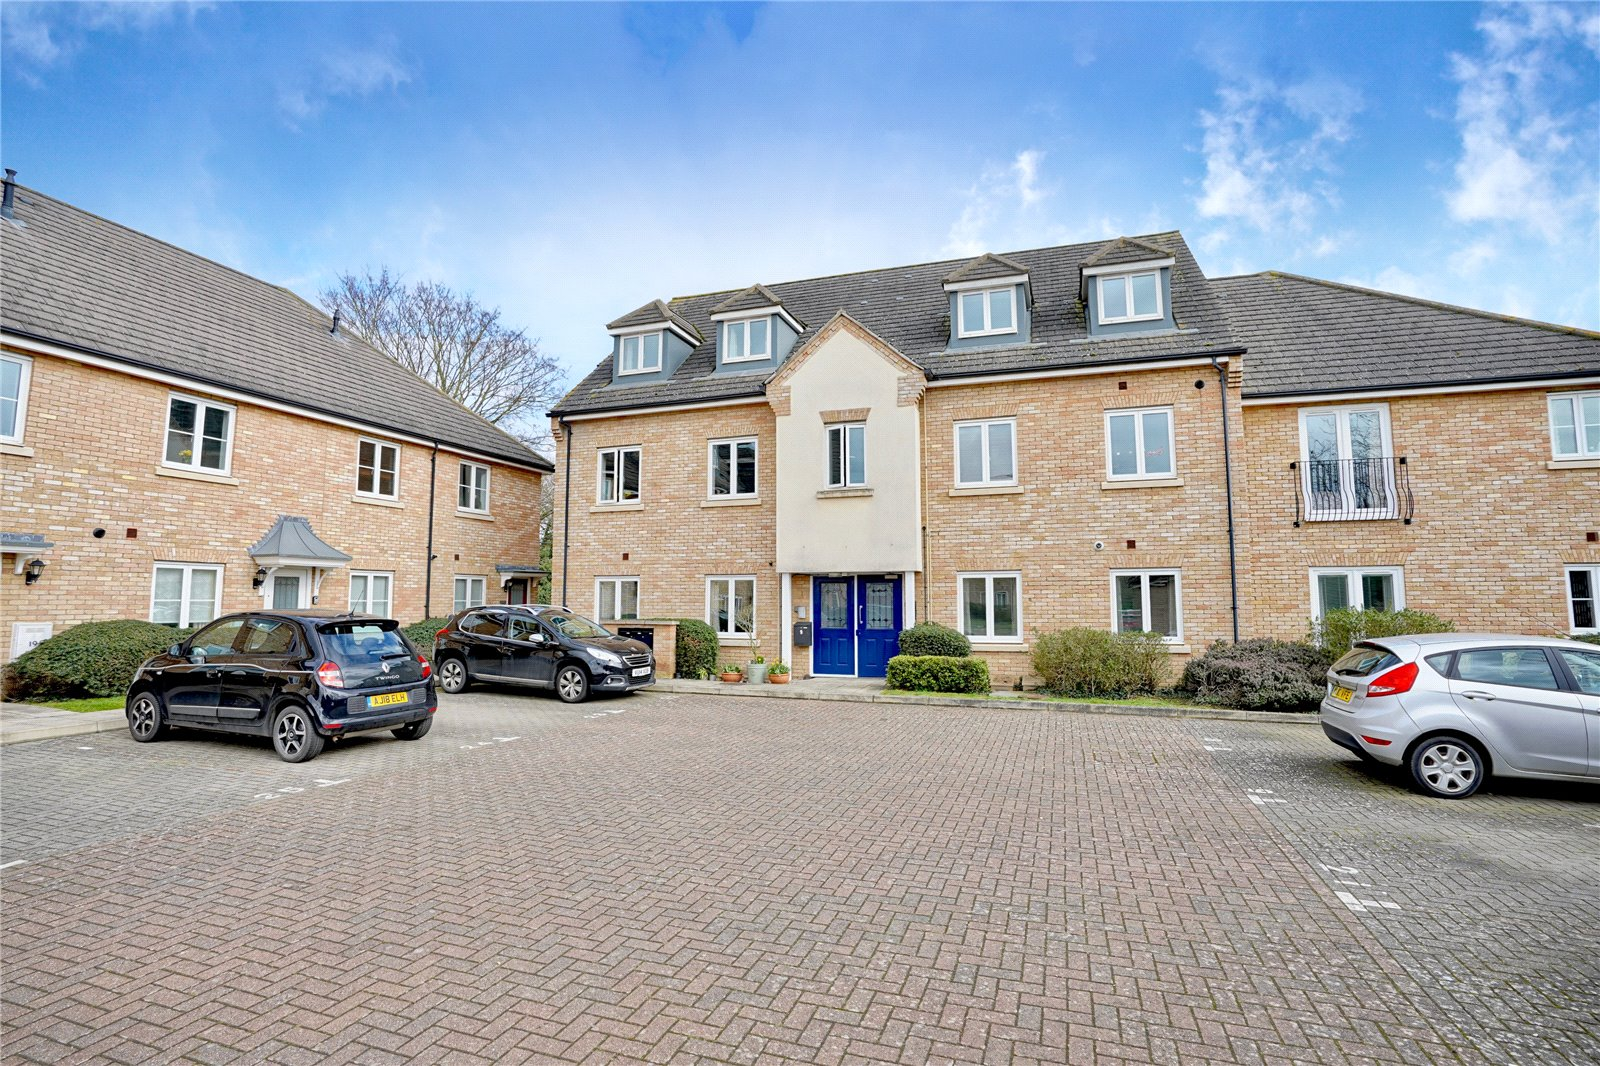 2 bed apartment for sale in St. Ives, PE27 5QL 10